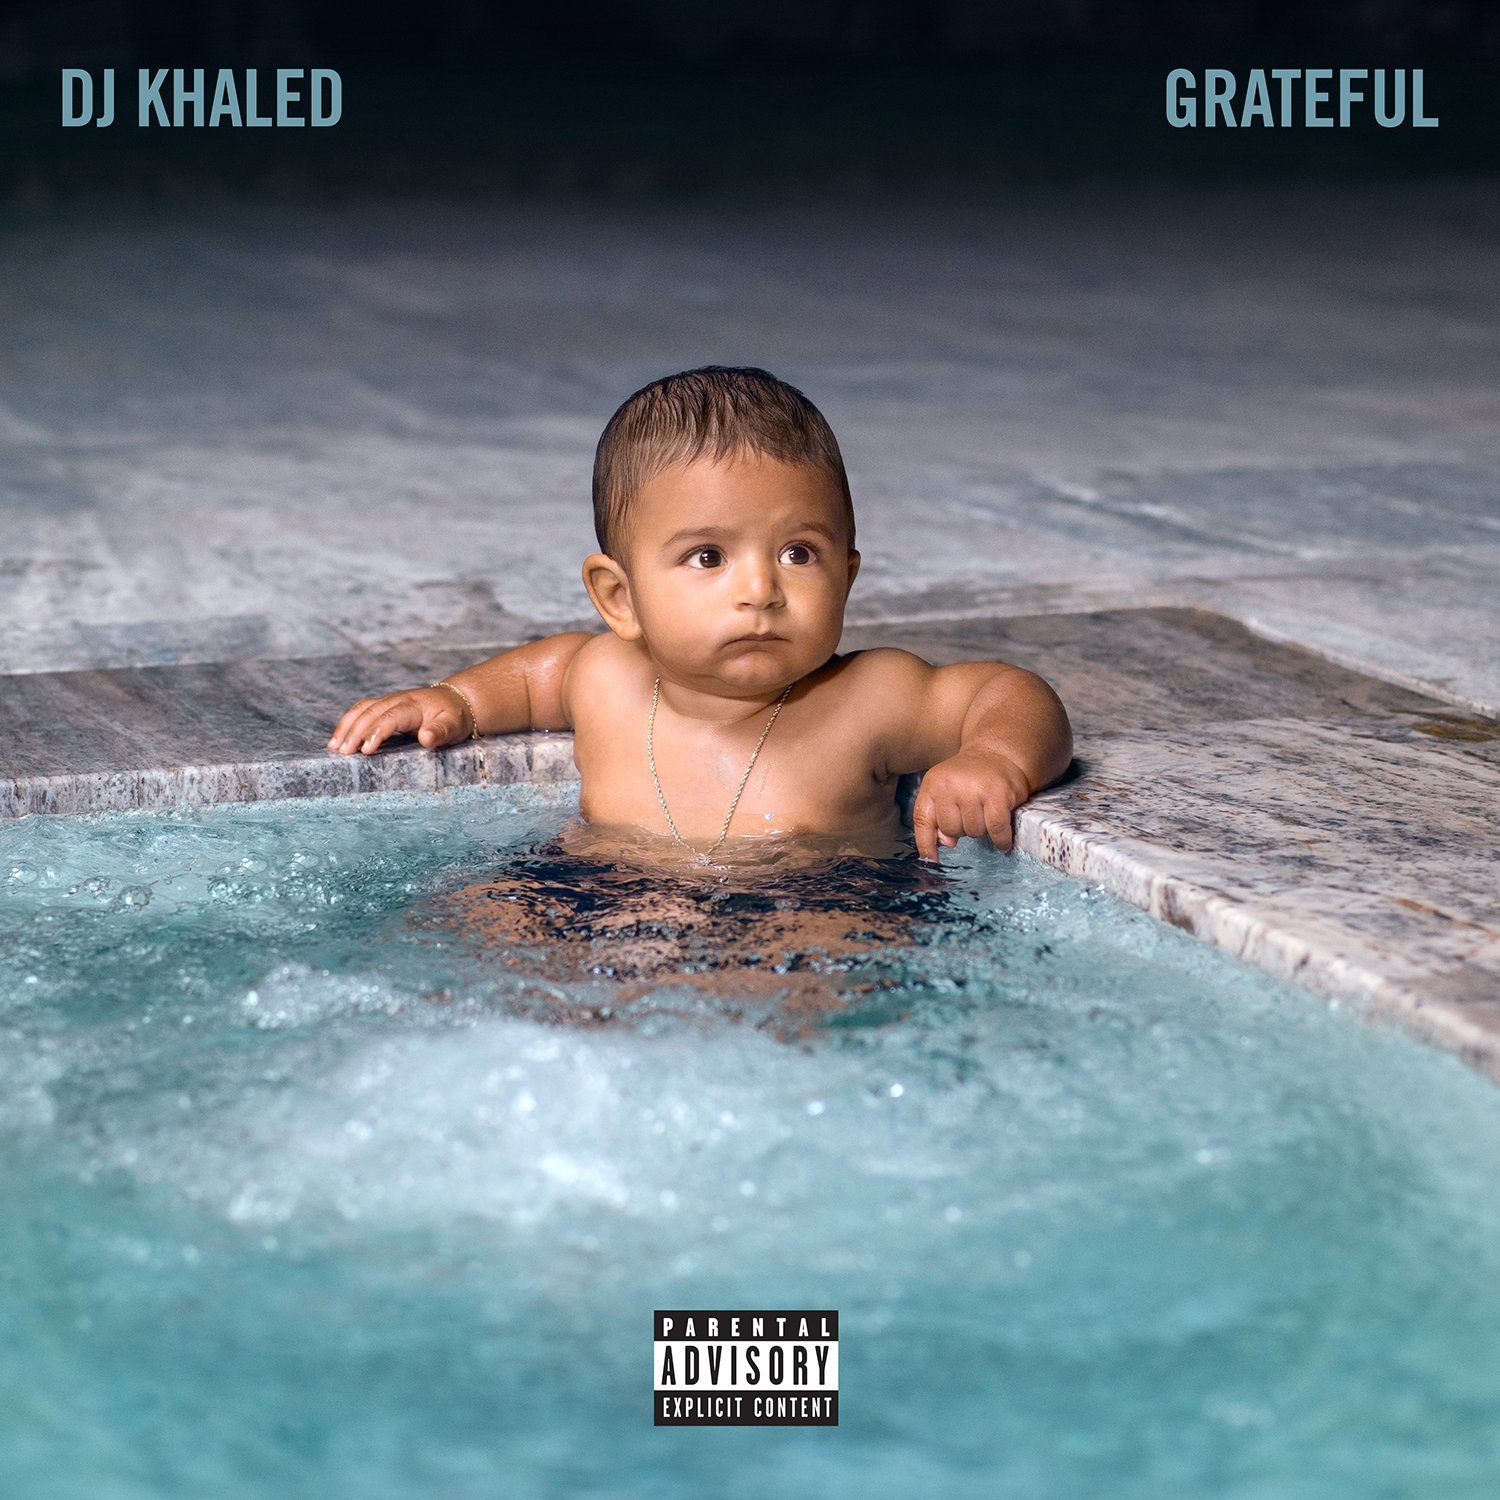 dj khaled grateful stream album download drake beyonce chance DJ Khaled releases all star new album, Grateful: Stream/download